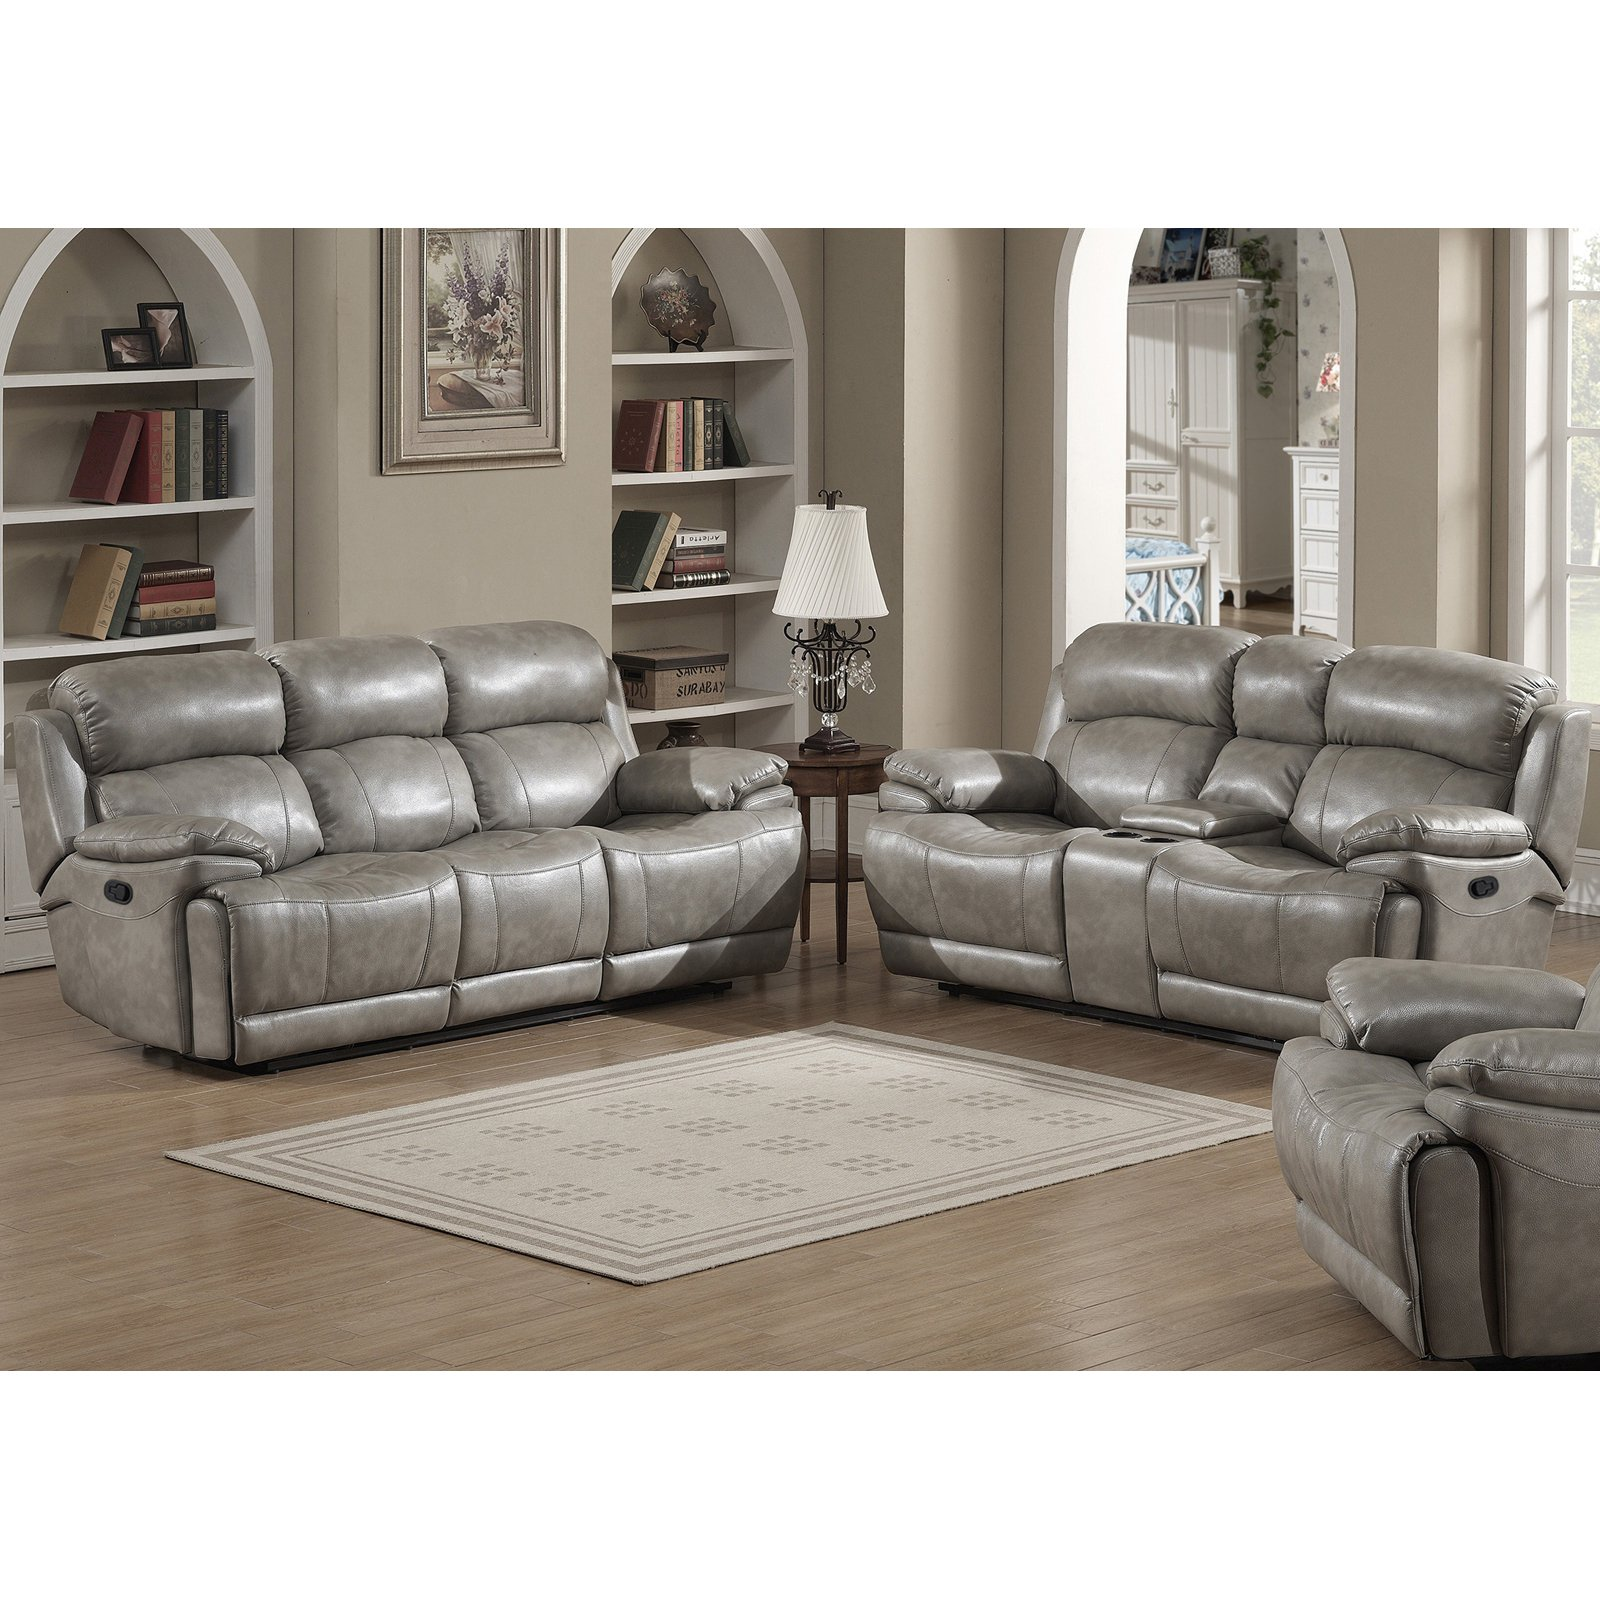 Christies Home Living Estella Collection 2 Piece Leather Living Room Sofa Set